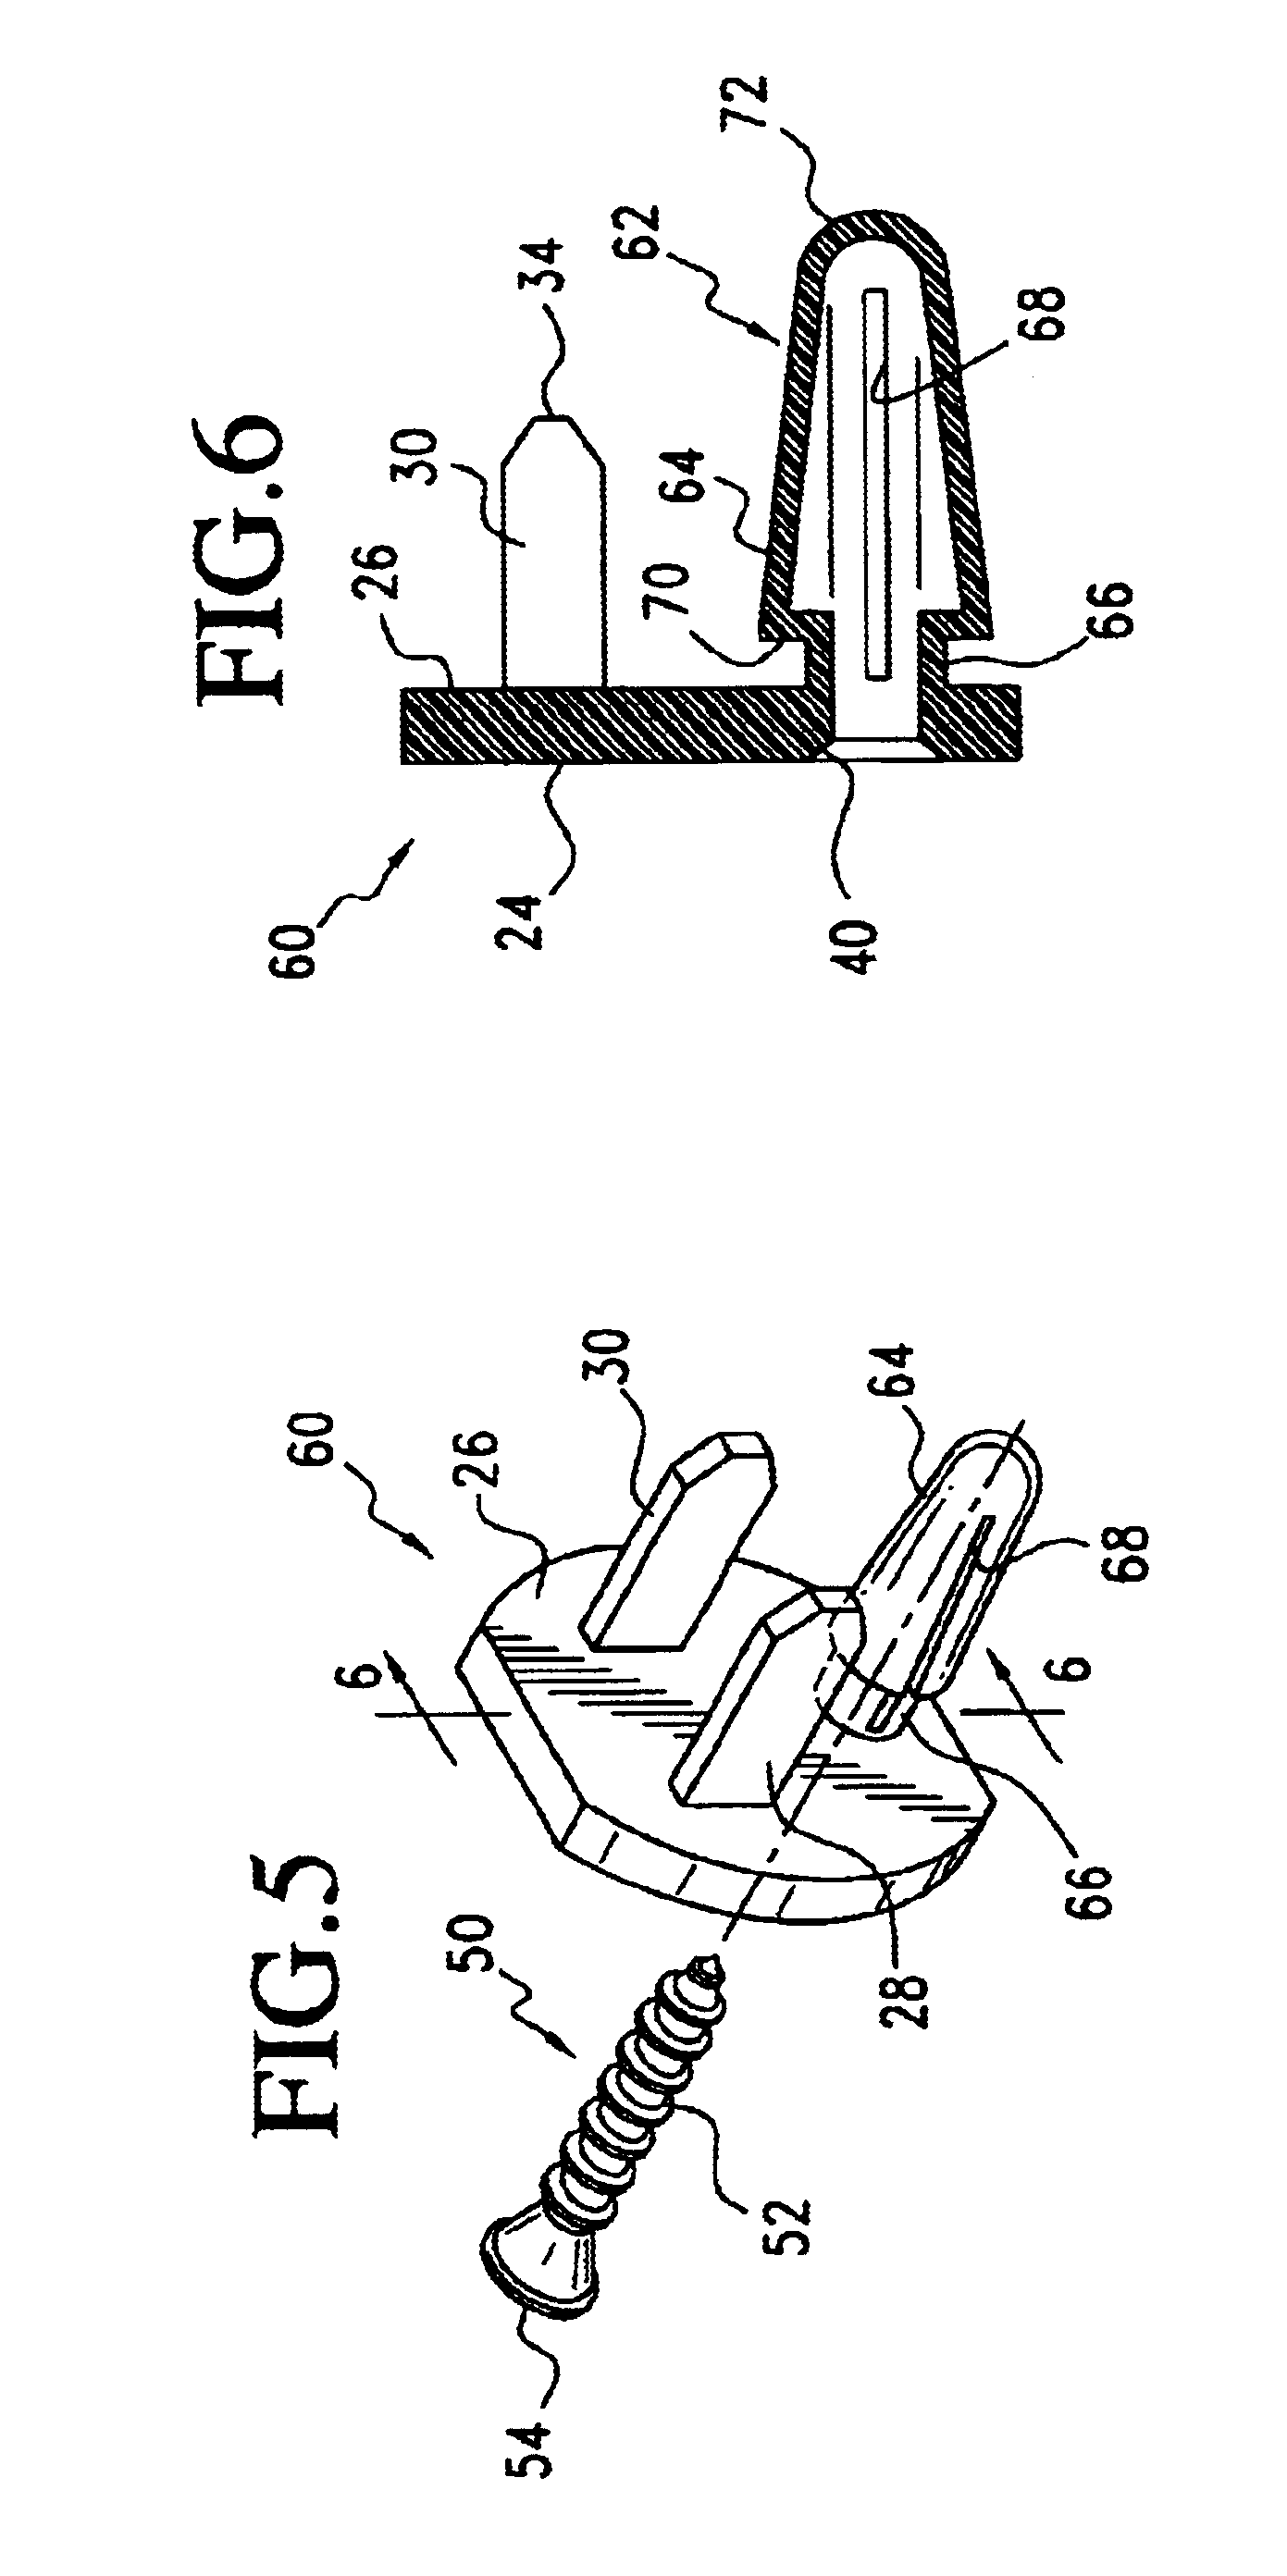 patent us6674003 - tamper-resistant outlet cover